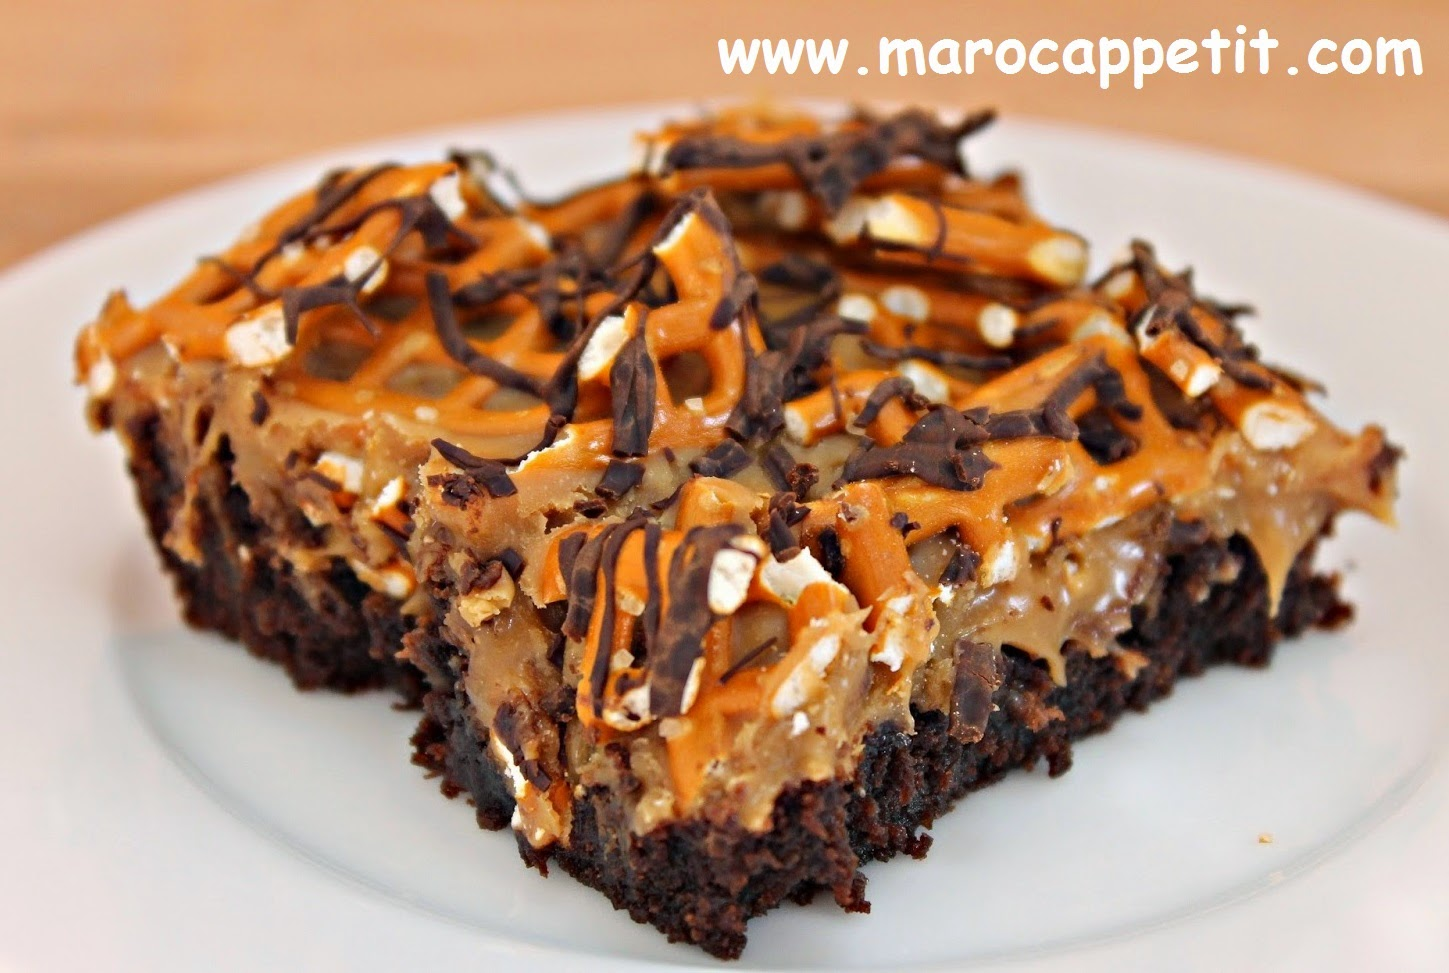 Brownies au caramel | Caramel Brownies